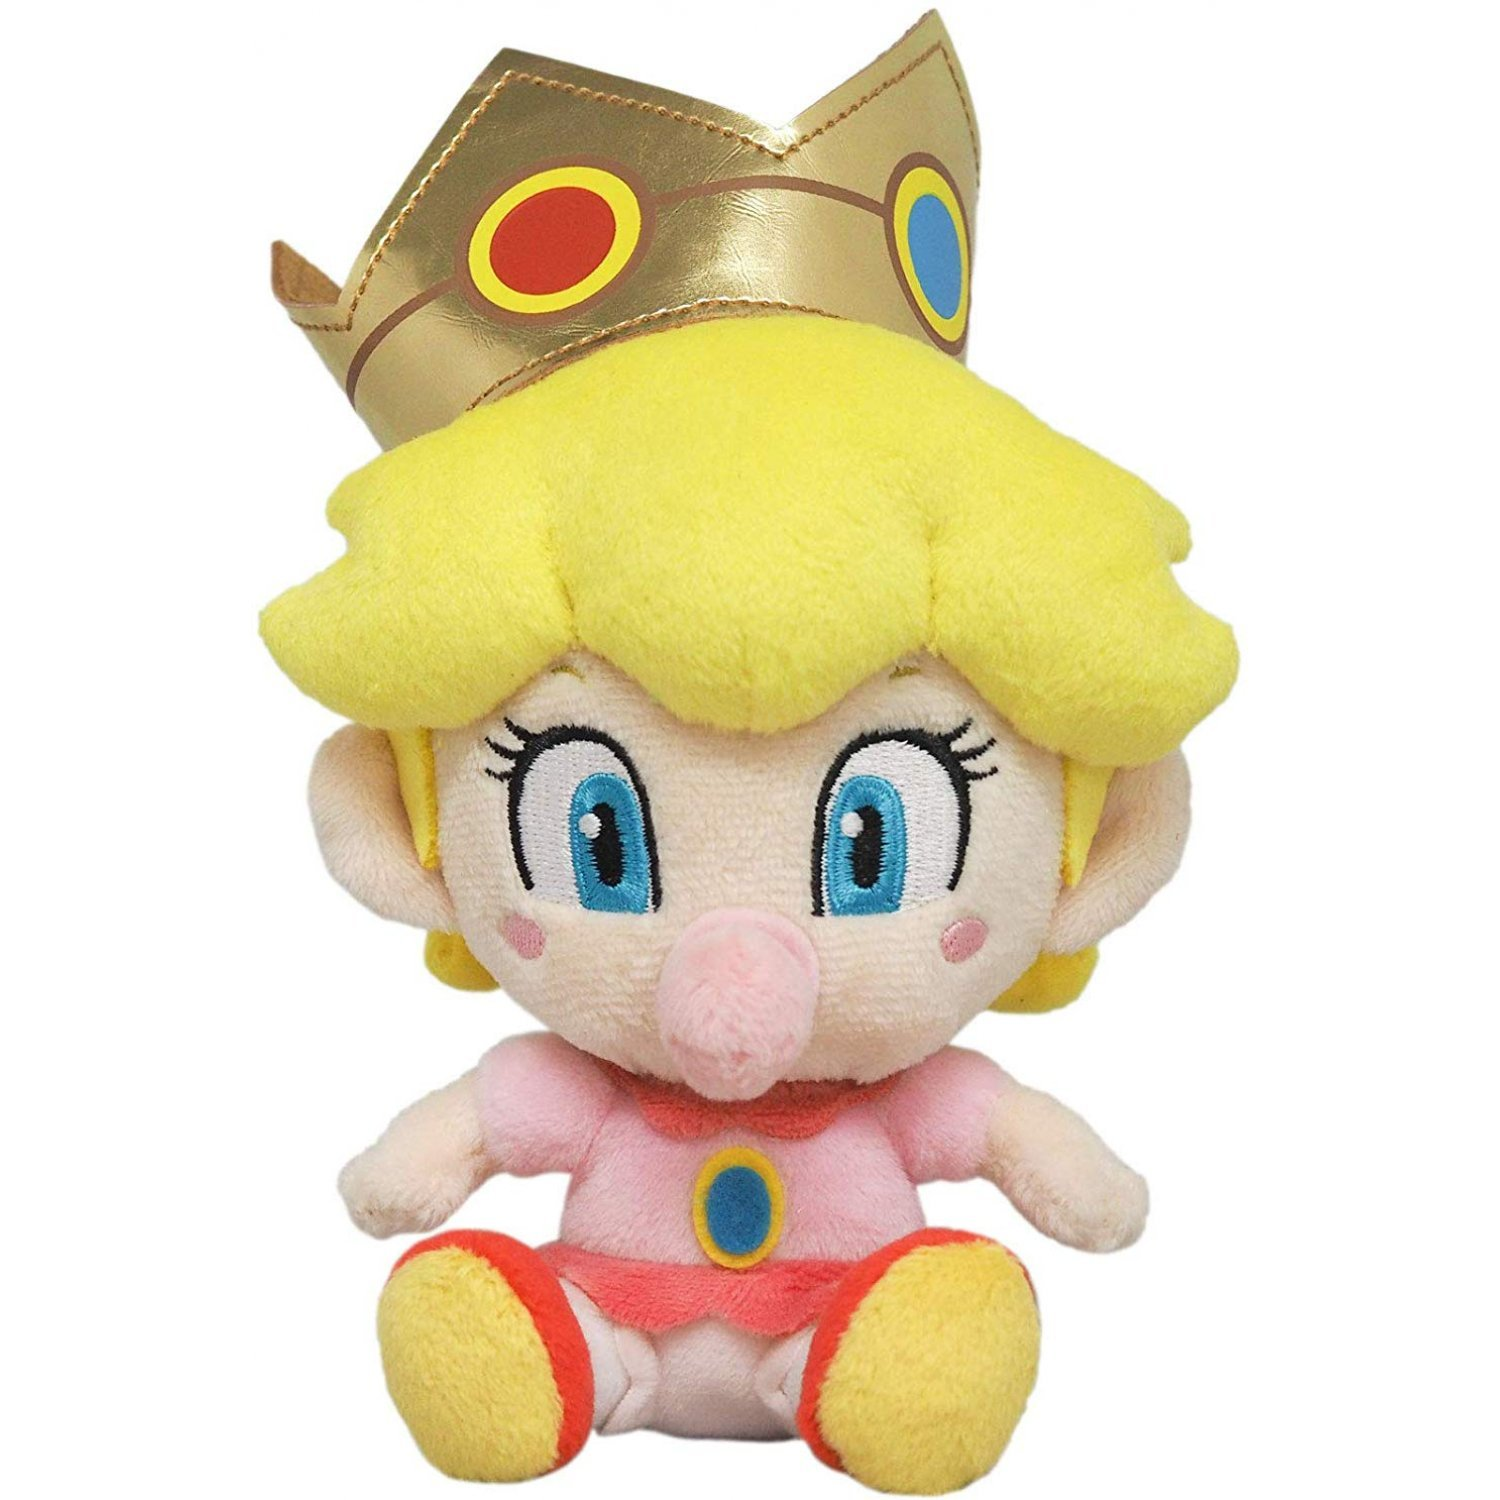 baby-peach-all-star-collection-plush